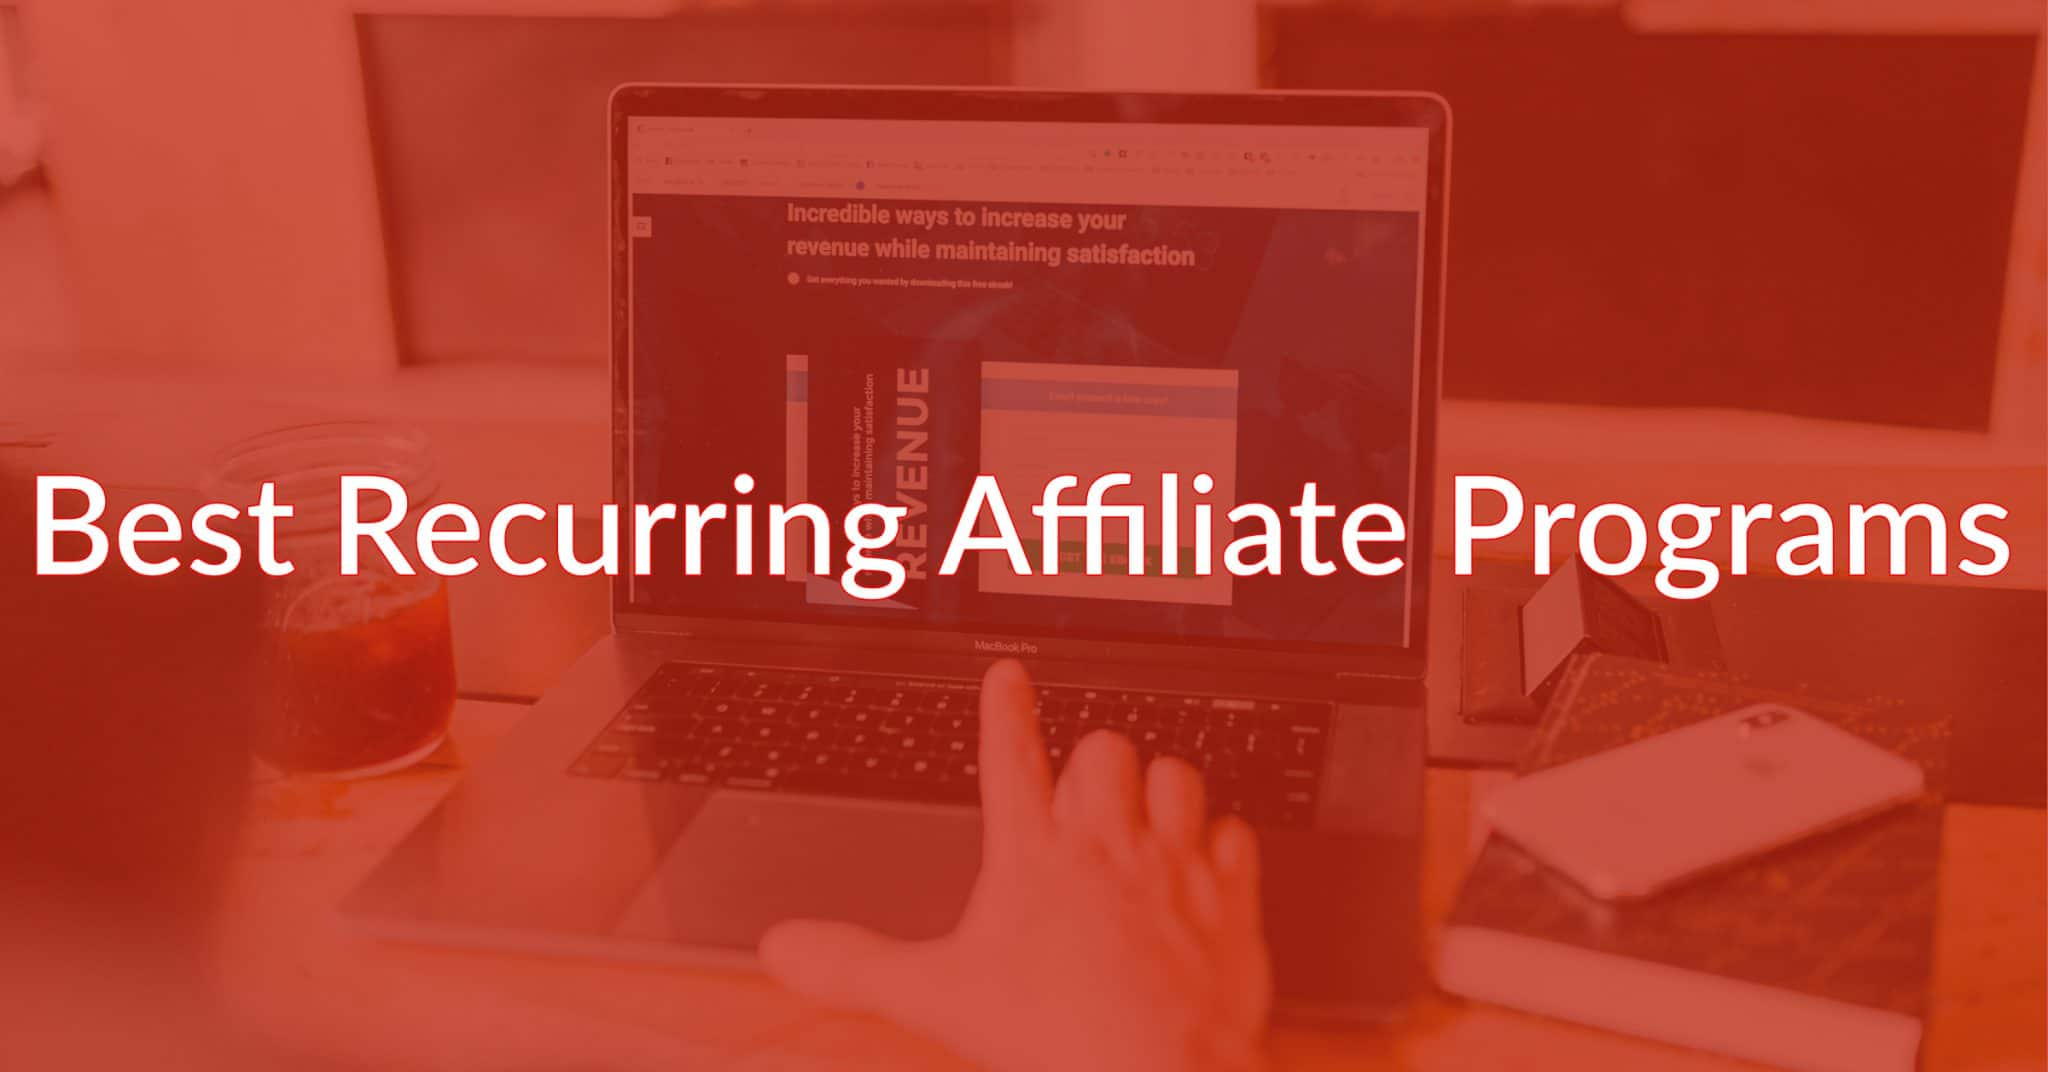 21 Best Recurring Affiliate Programs That You Can Promote